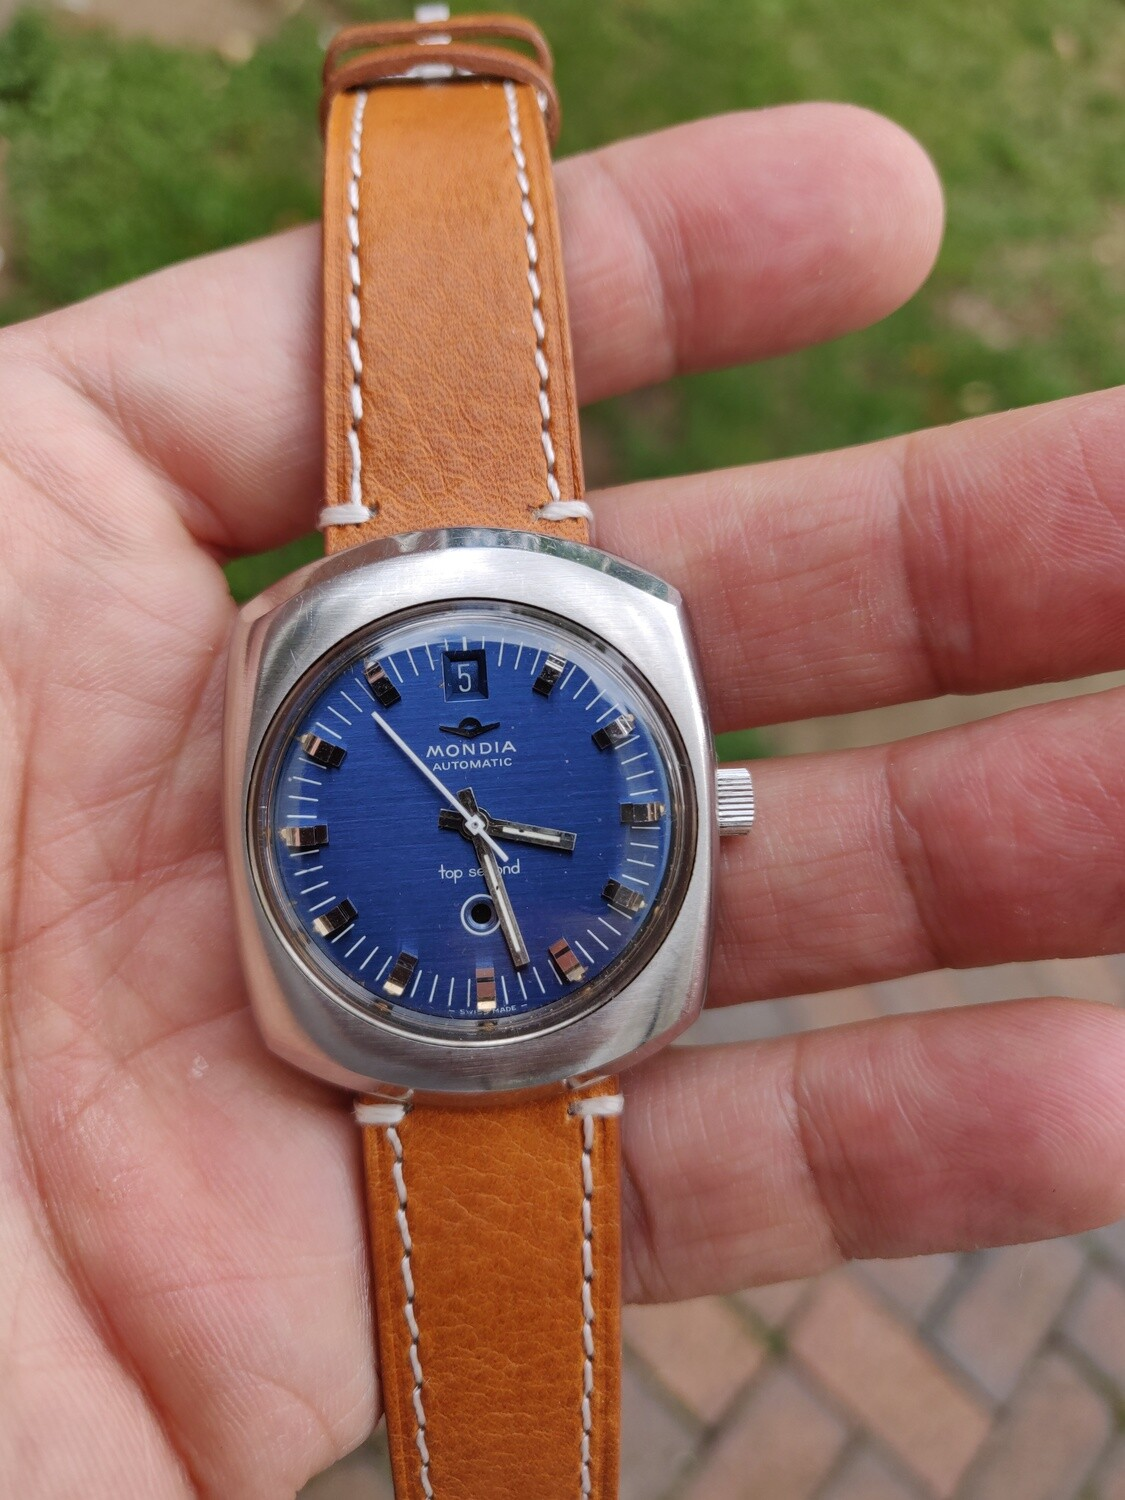 1970's MONDIA Top Second Automatic Vintage Watch